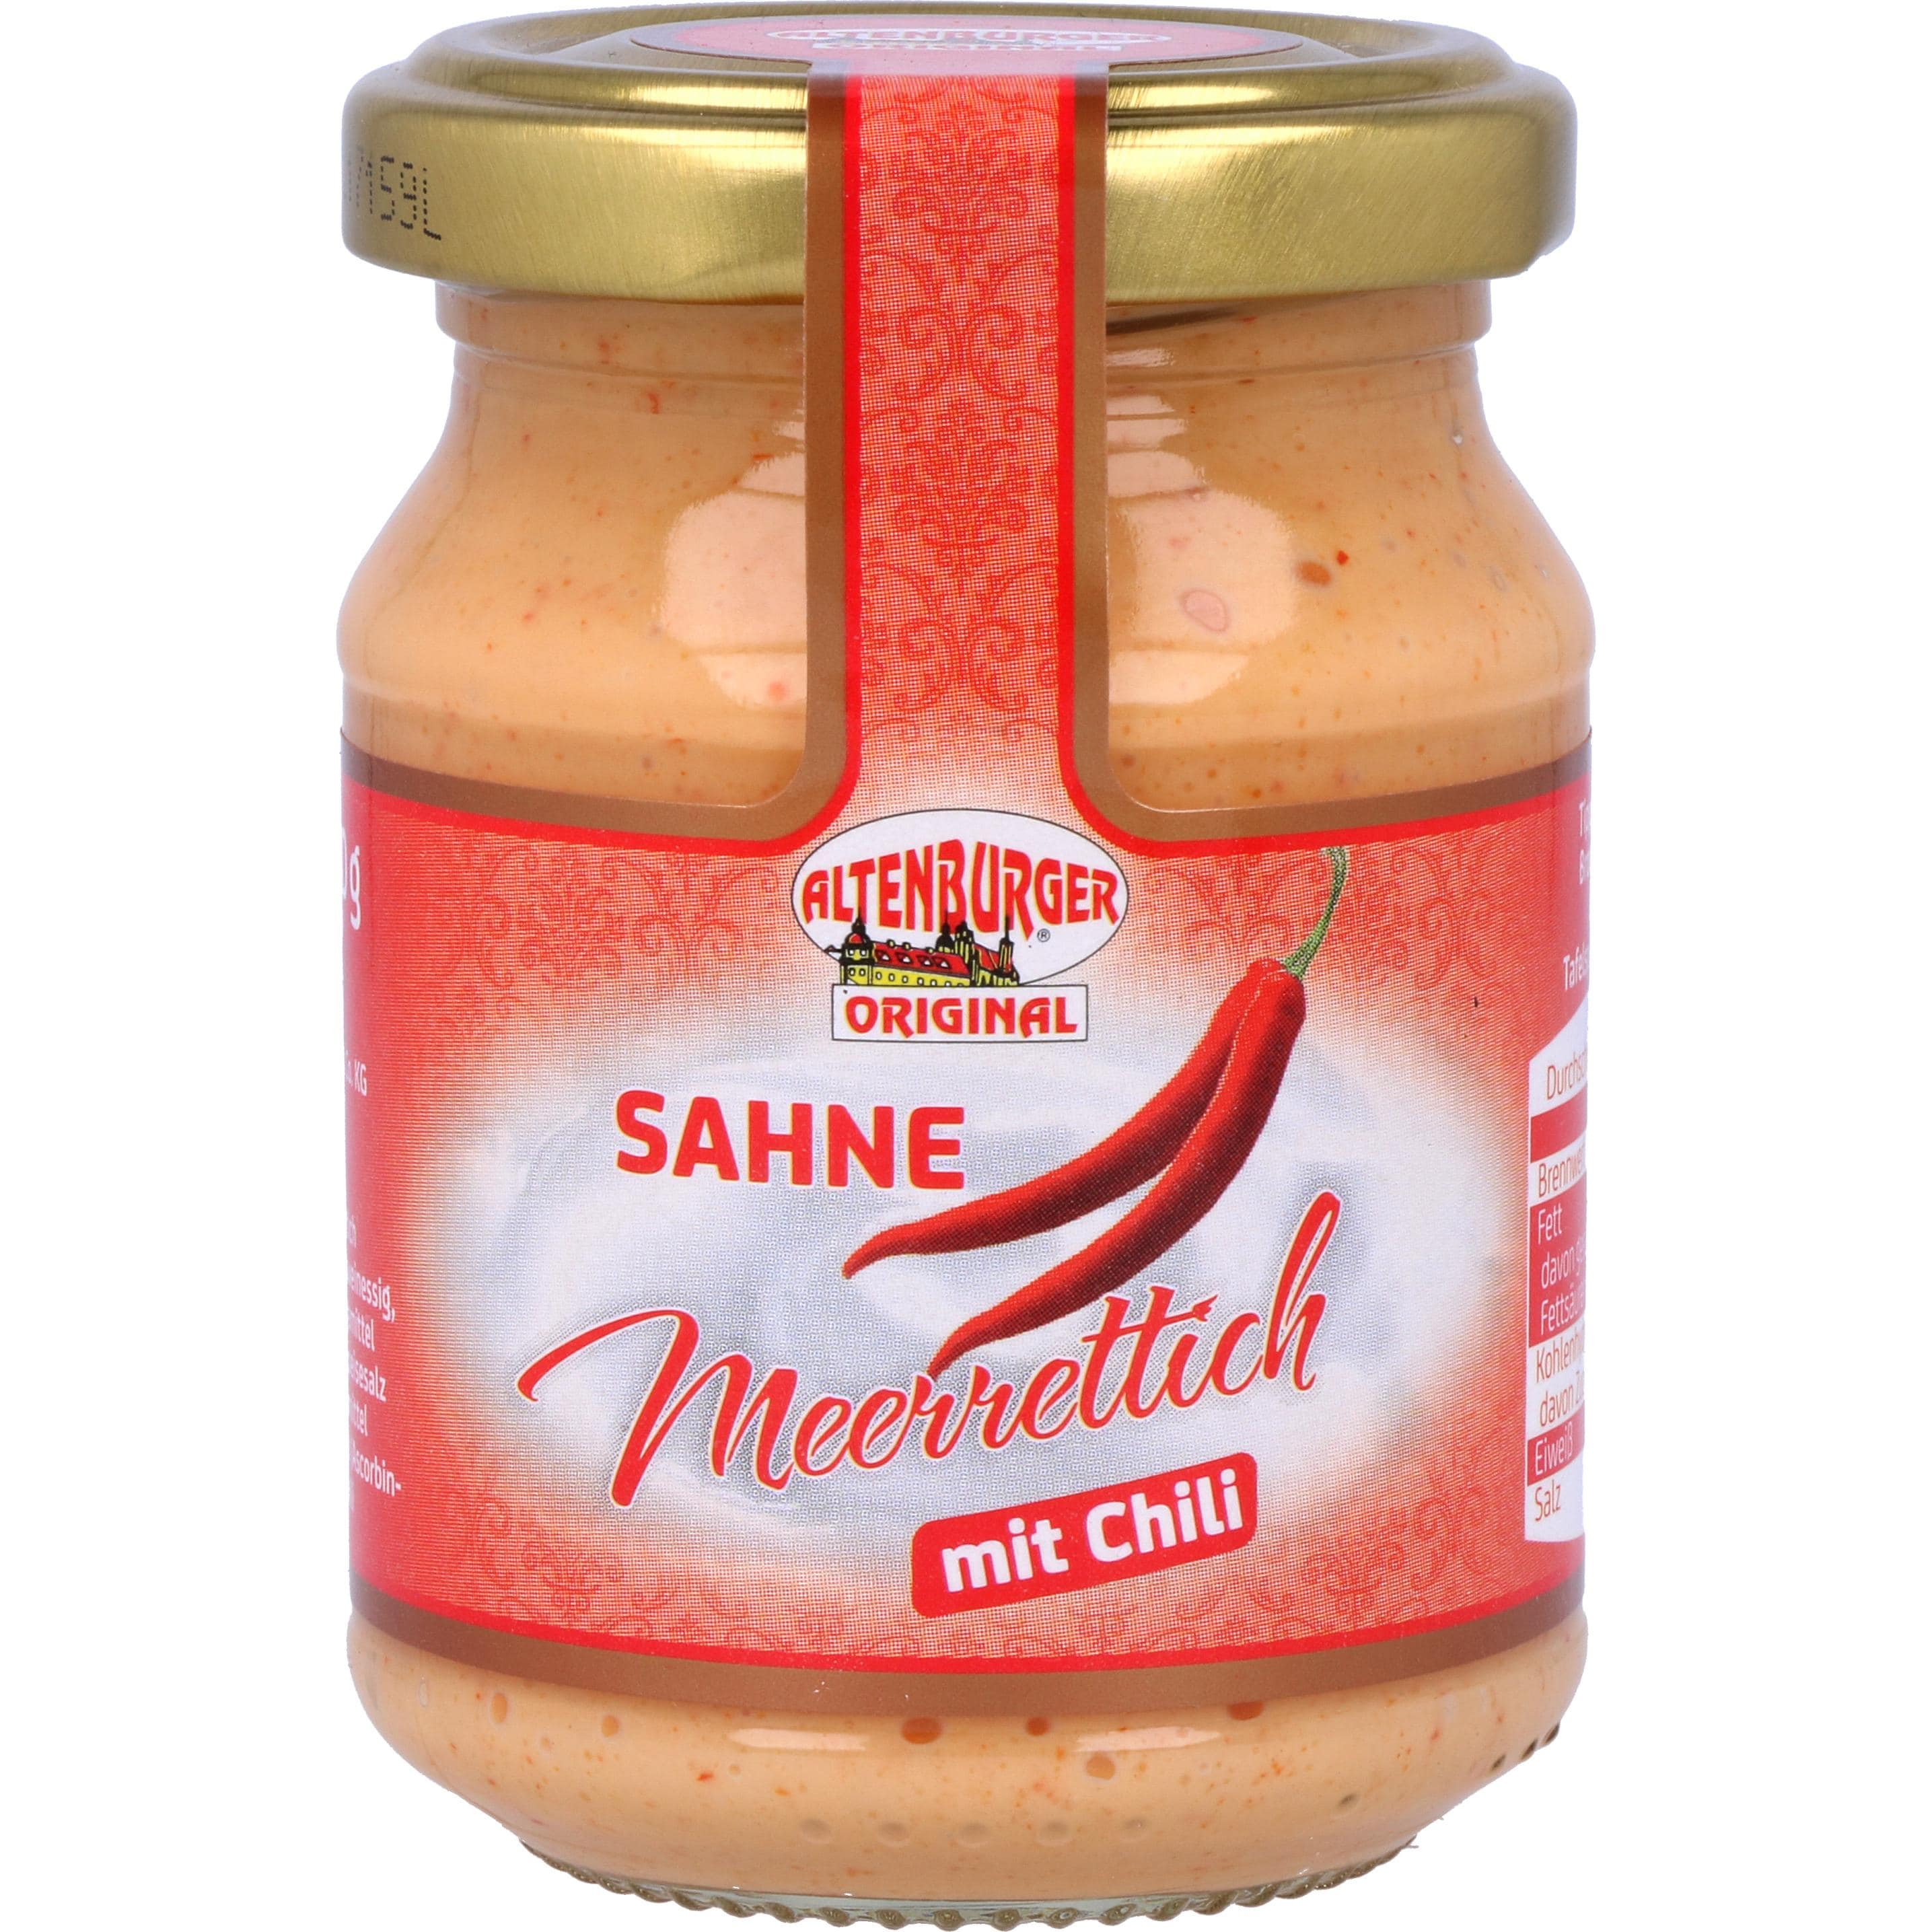 Altenburger Sahne Meerrettich mit Chili 140g